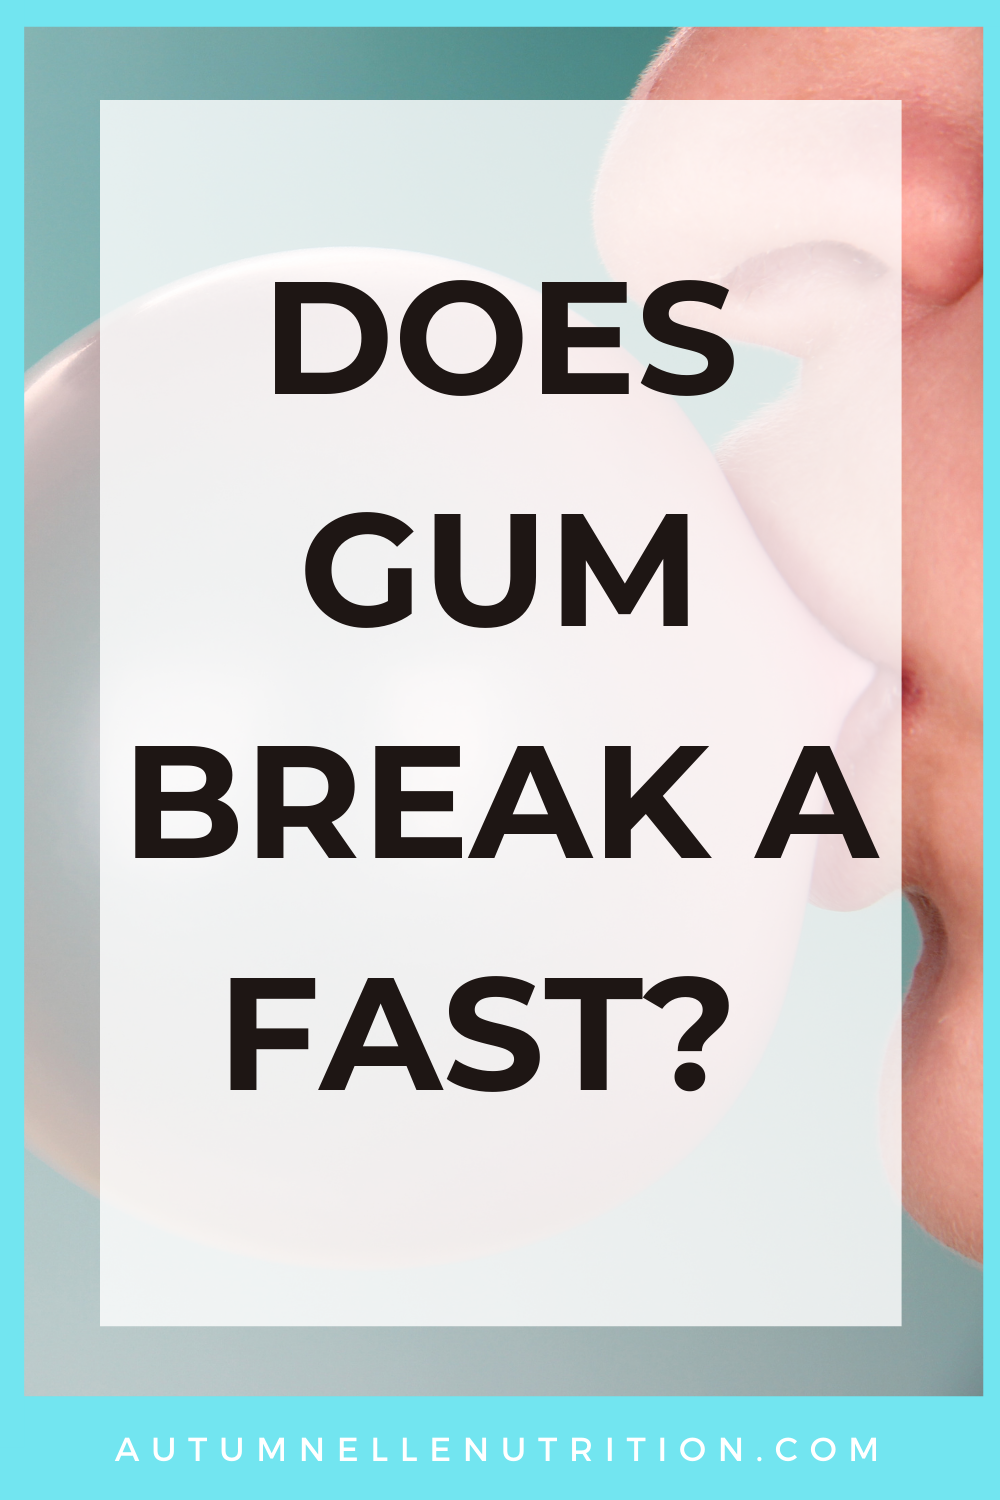 Does Gum Break a Fast?